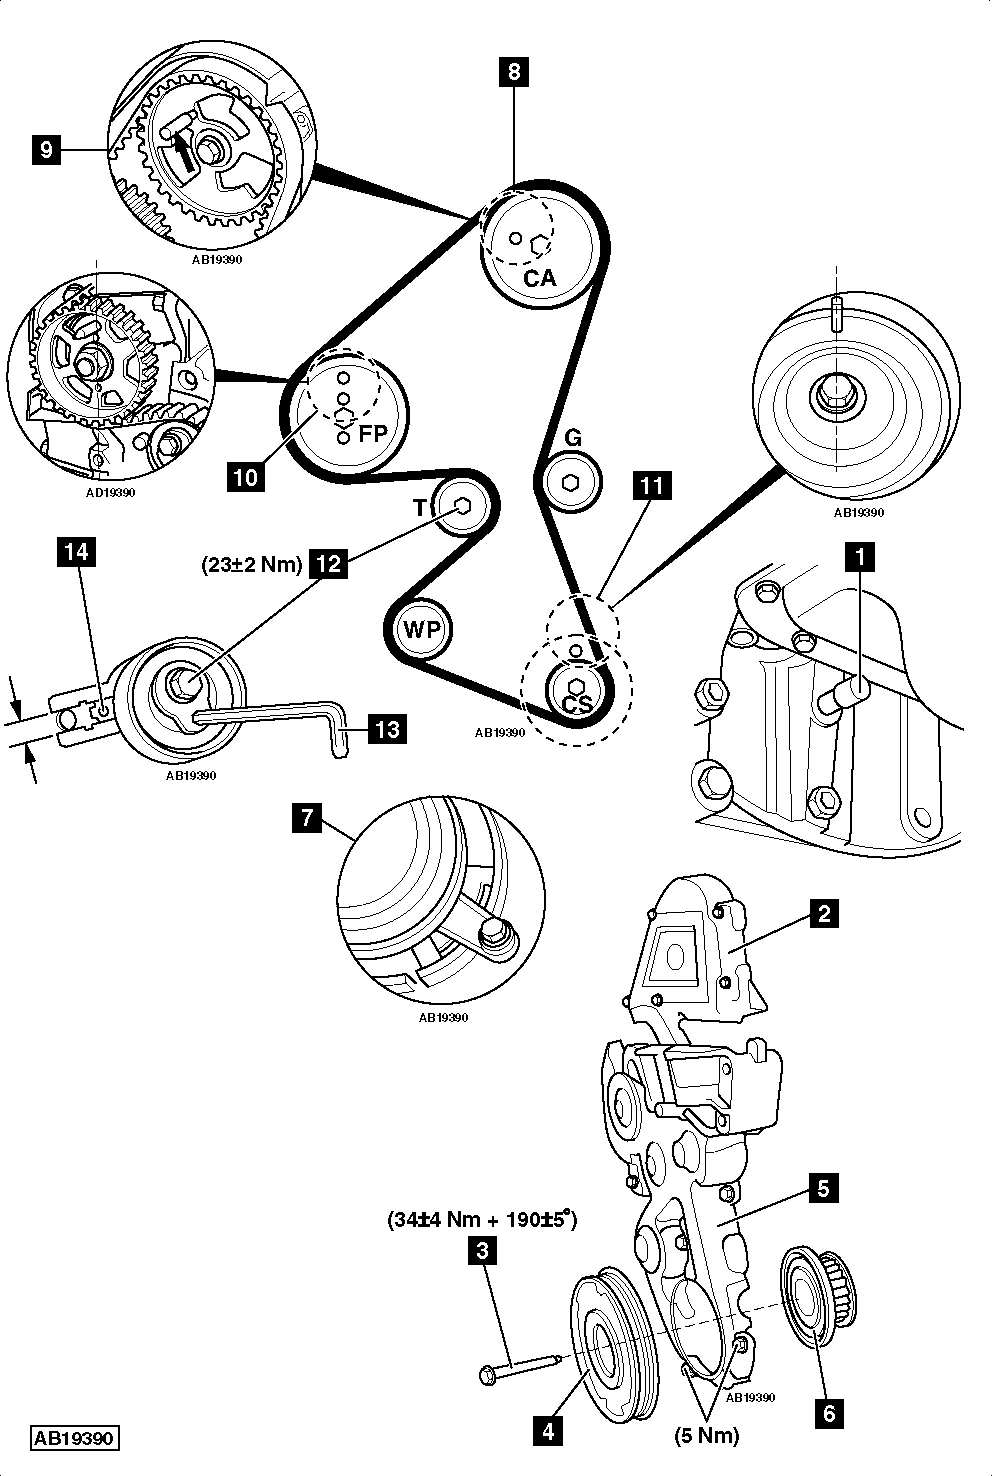 1986 Club Car Engine Diagram Guide And Troubleshooting Of Wiring 290 Timing Belt Replacement How To Replace On Peugeot 308 1 6 Hdi 2007 2010 Gas Parts Carburetor